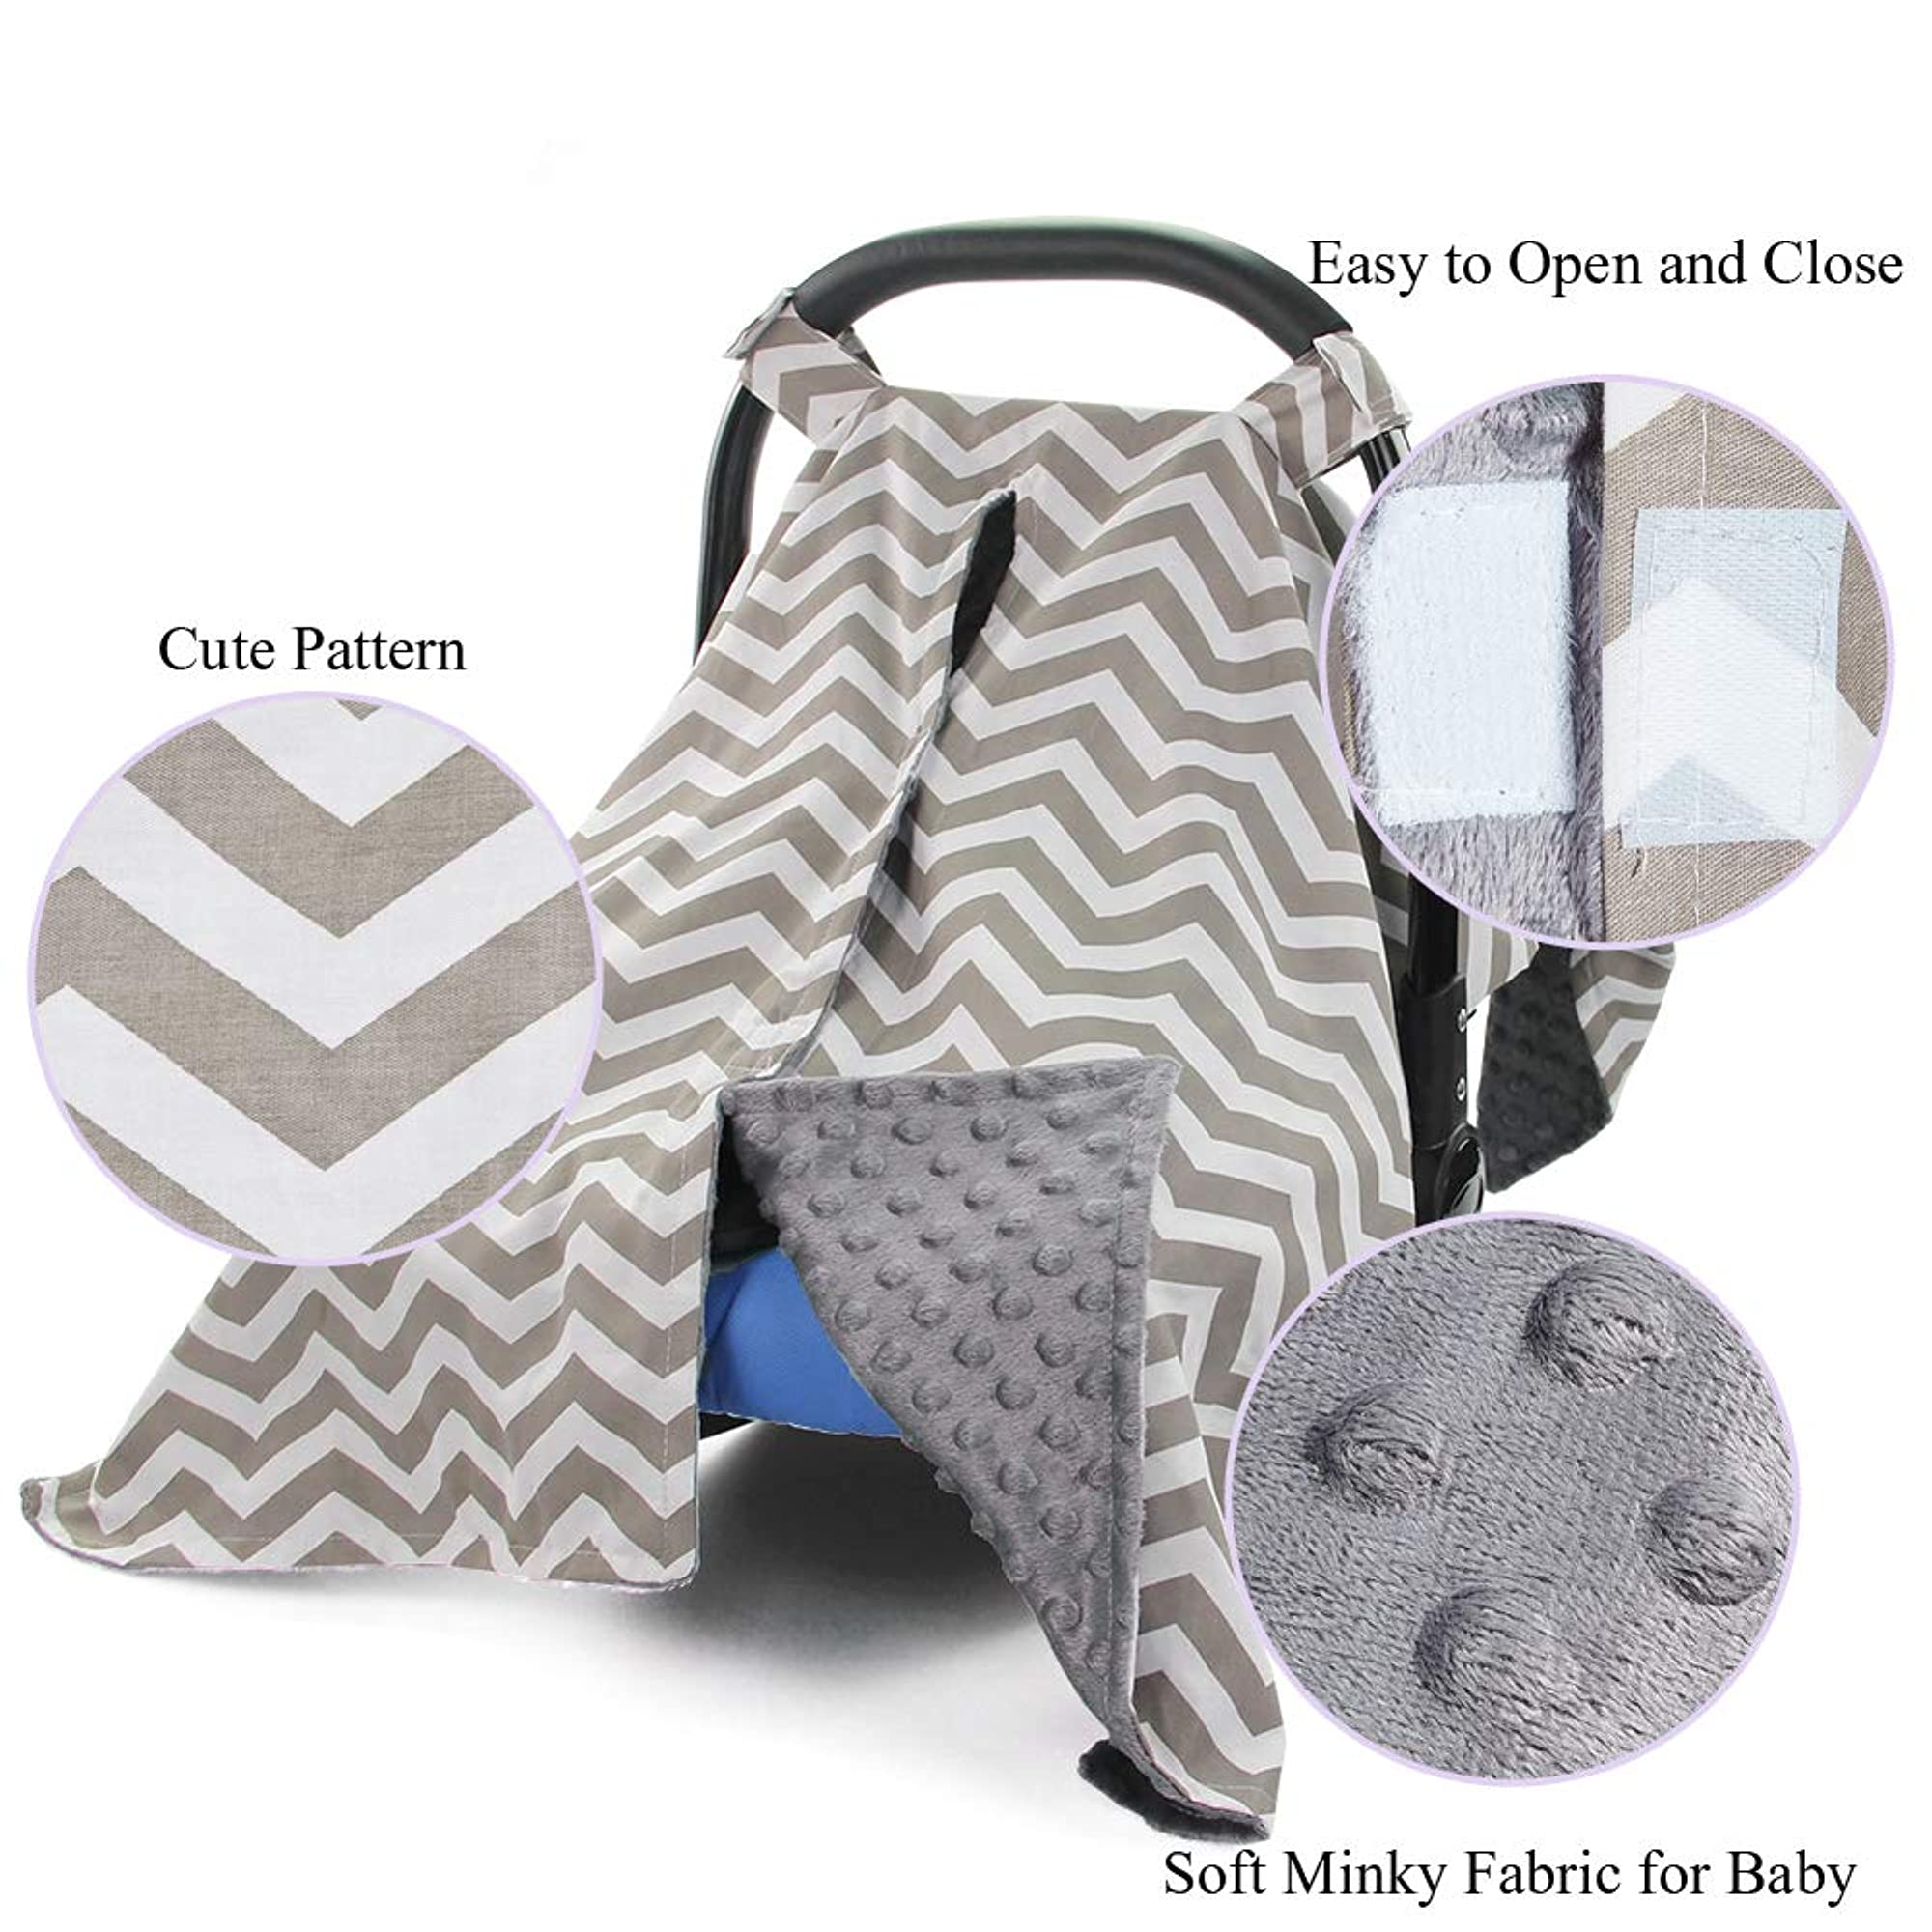 Car Seat And Nursing Cover For Babies